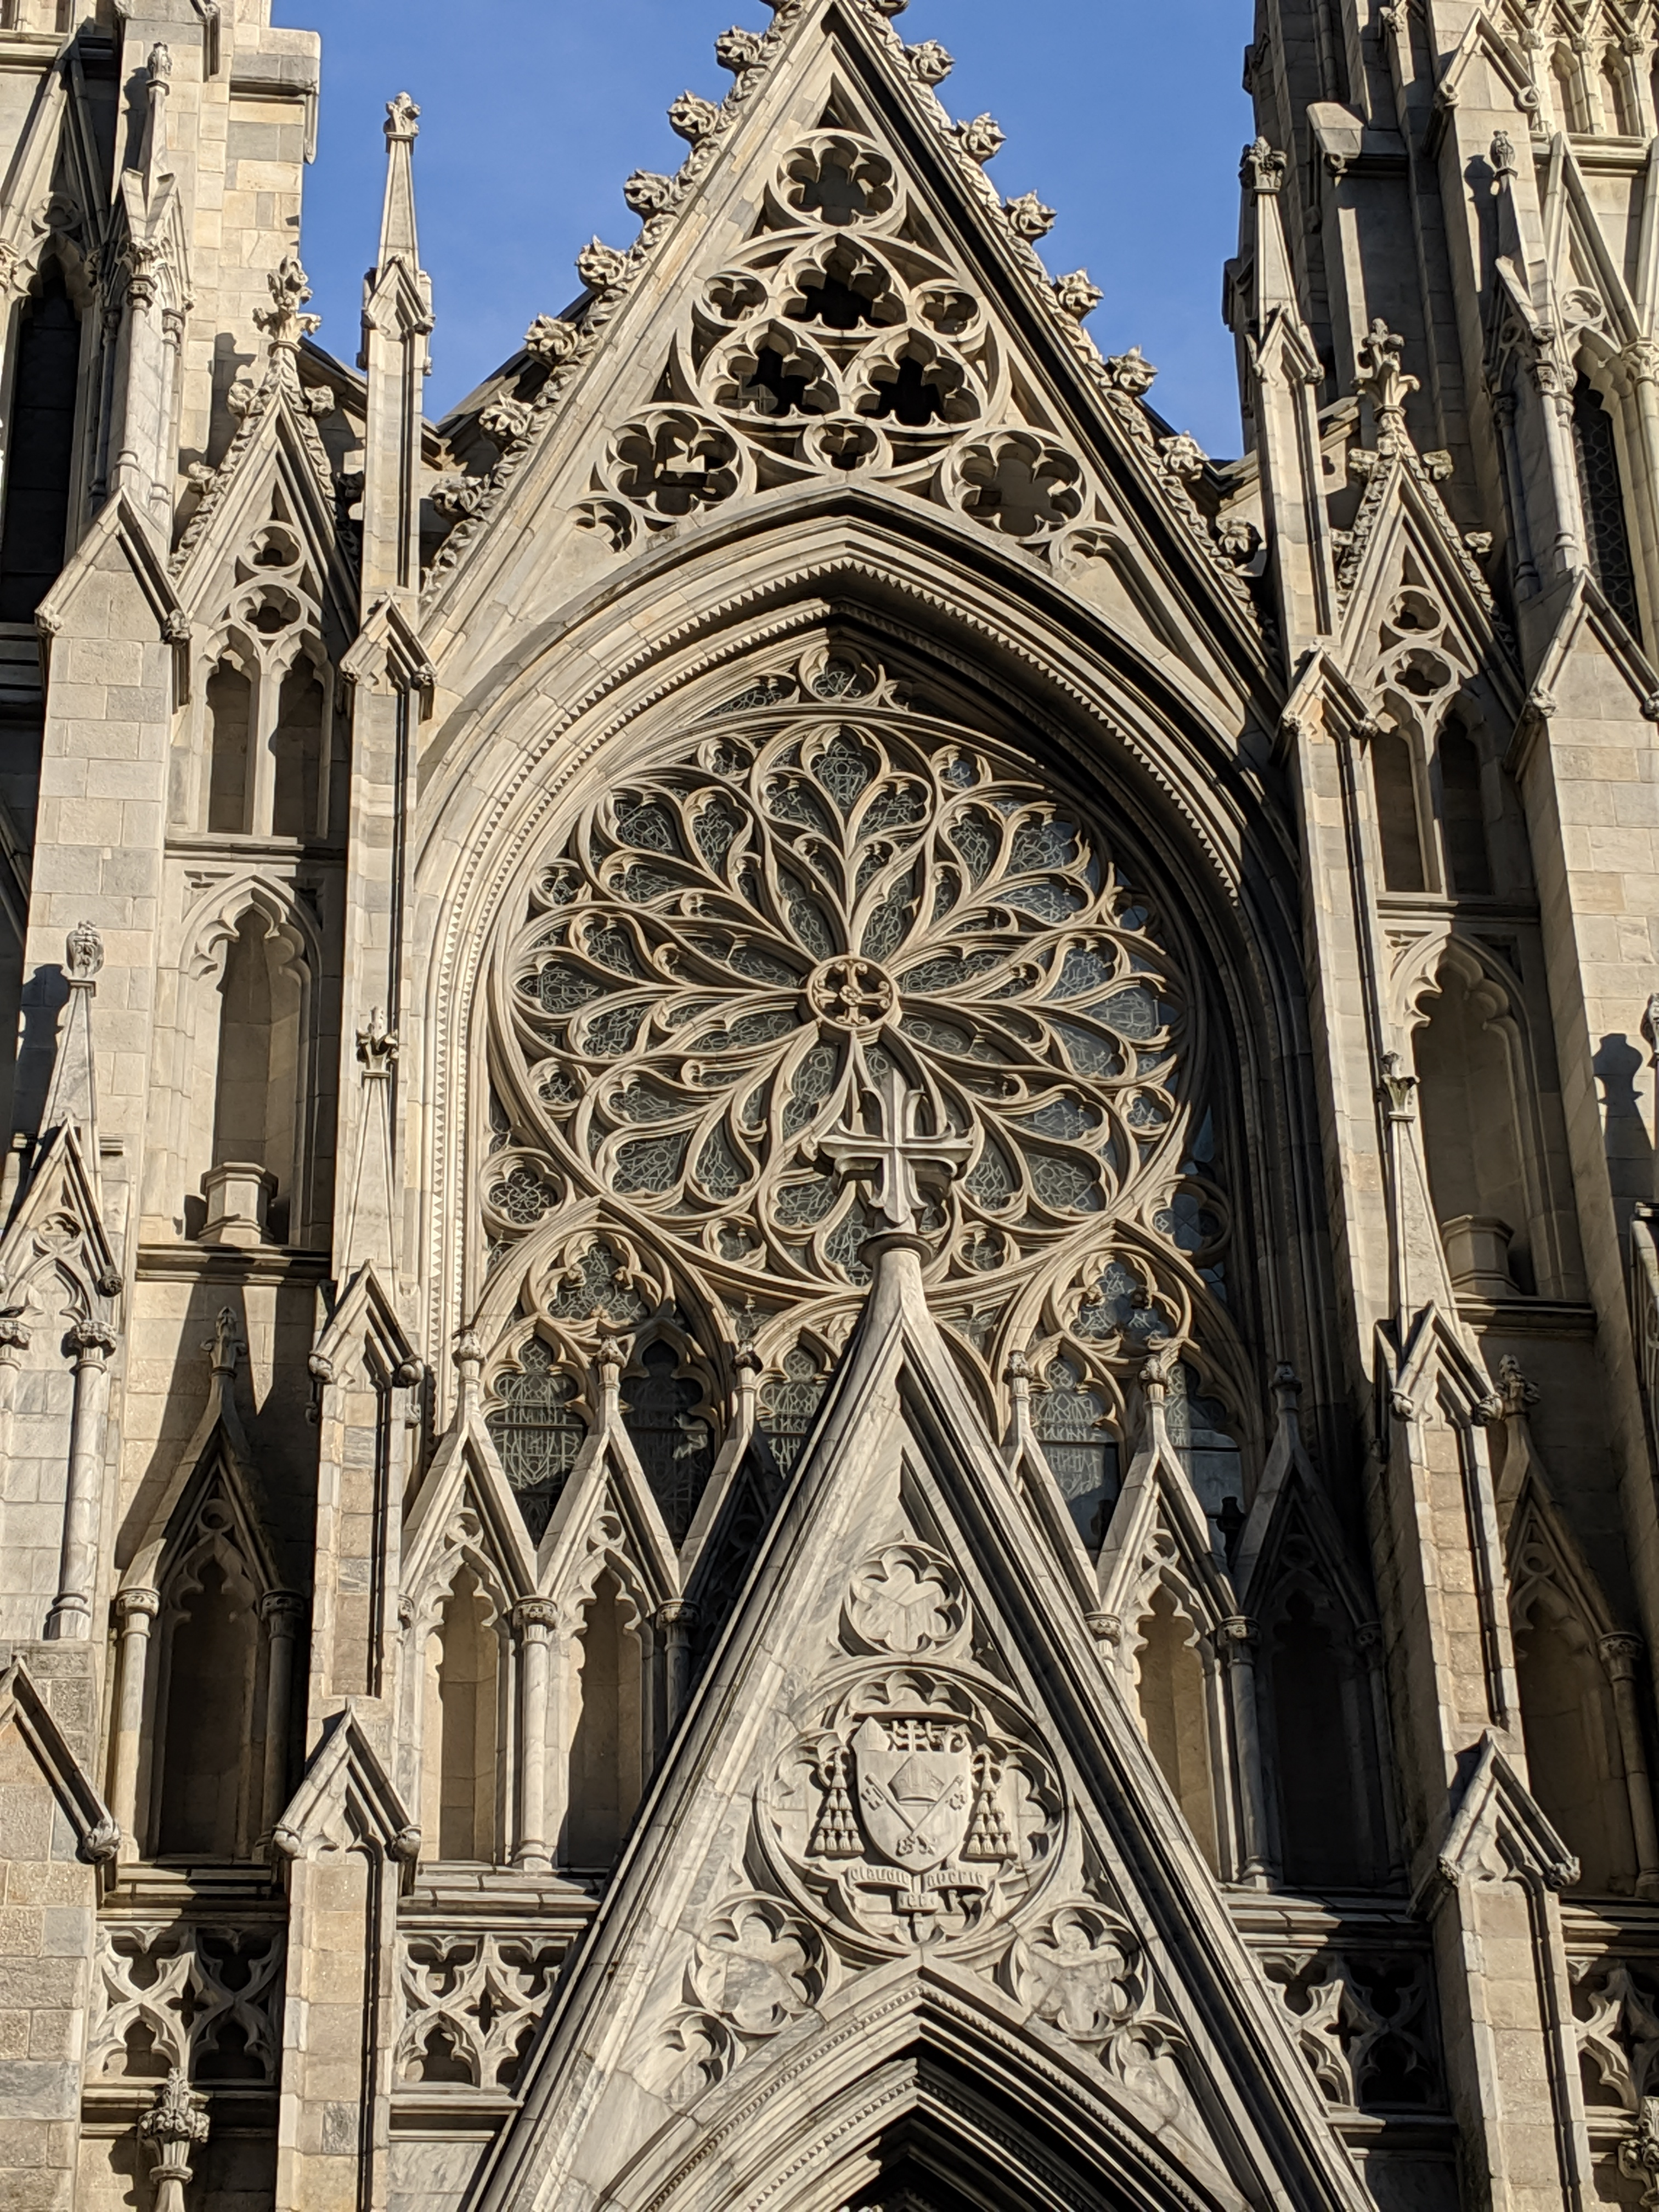 The facade of St. Patrick's Cathedral